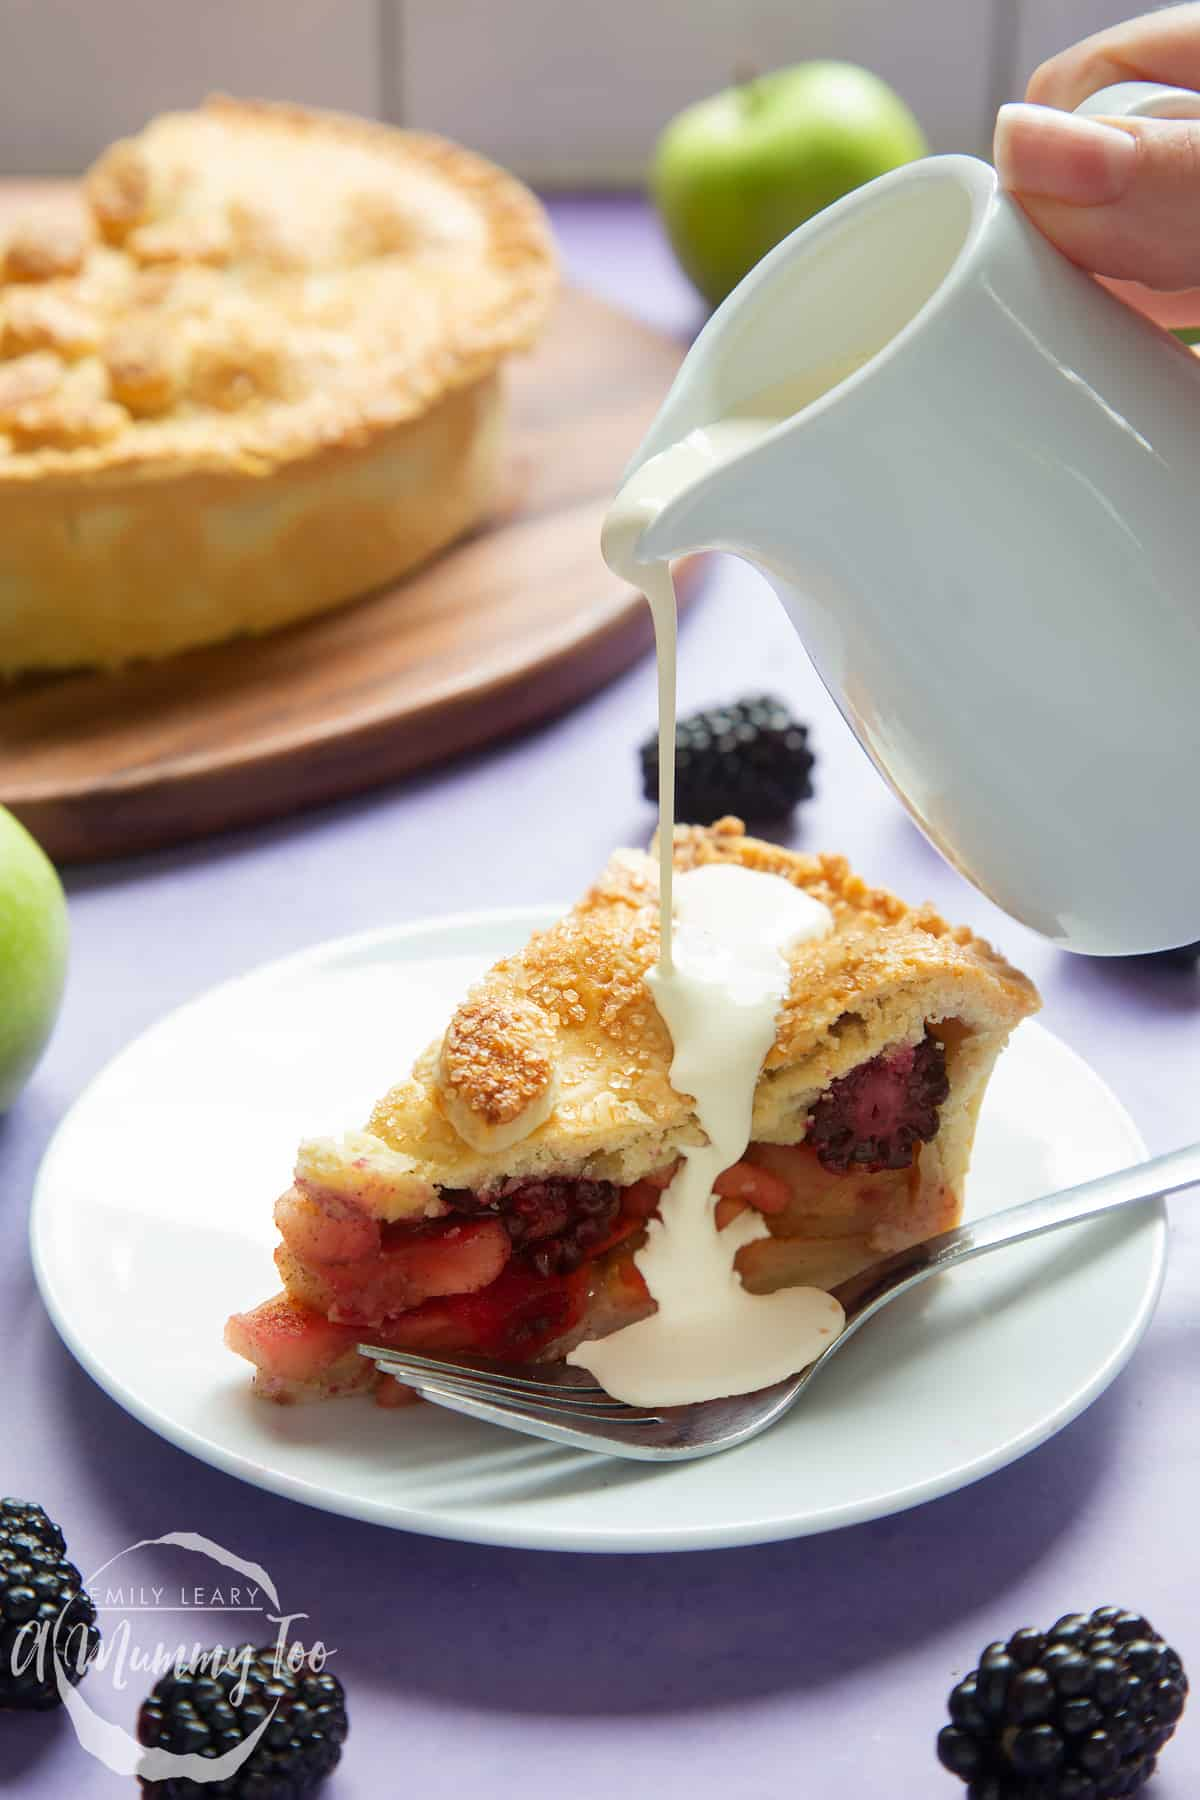 A slice of apple and blackberry pie on a white plate with a fork. A small white jug pours cream onto the pie.